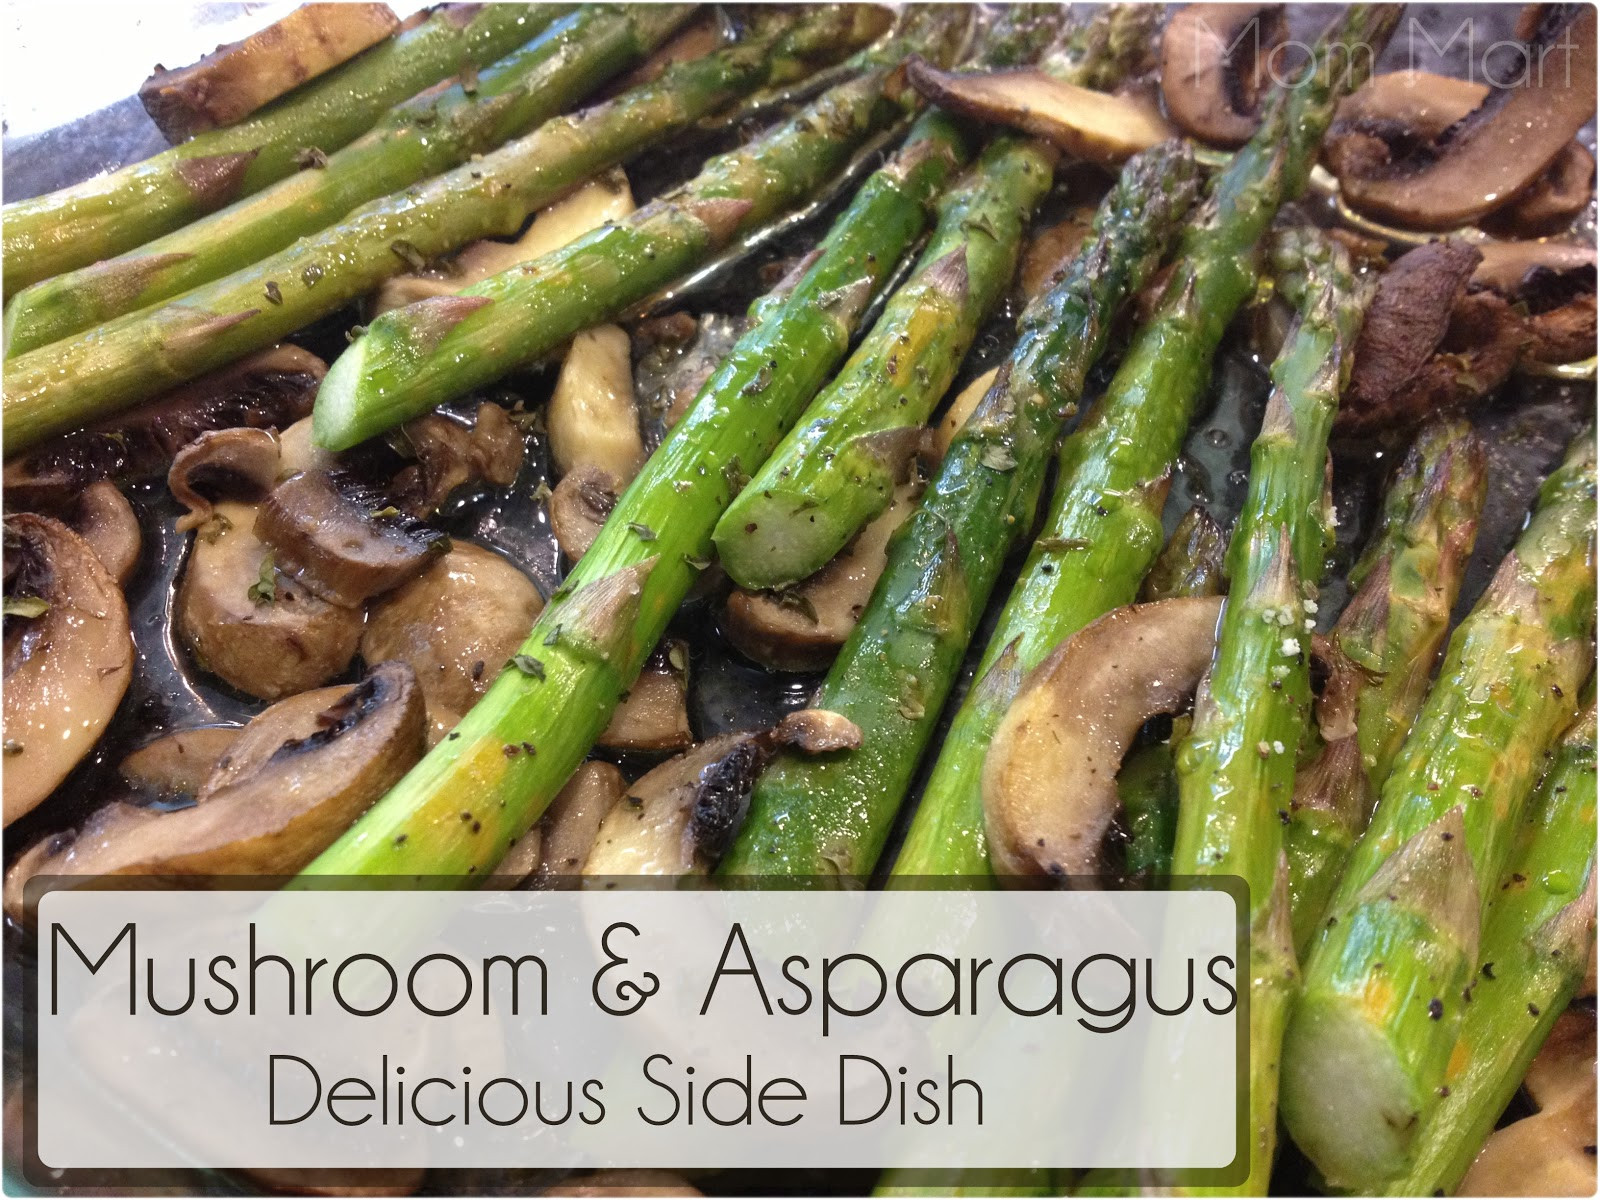 Asparagus Side Dishes  Mom Mart Mushroom and Asparagus Delicious Side Dish Recipe